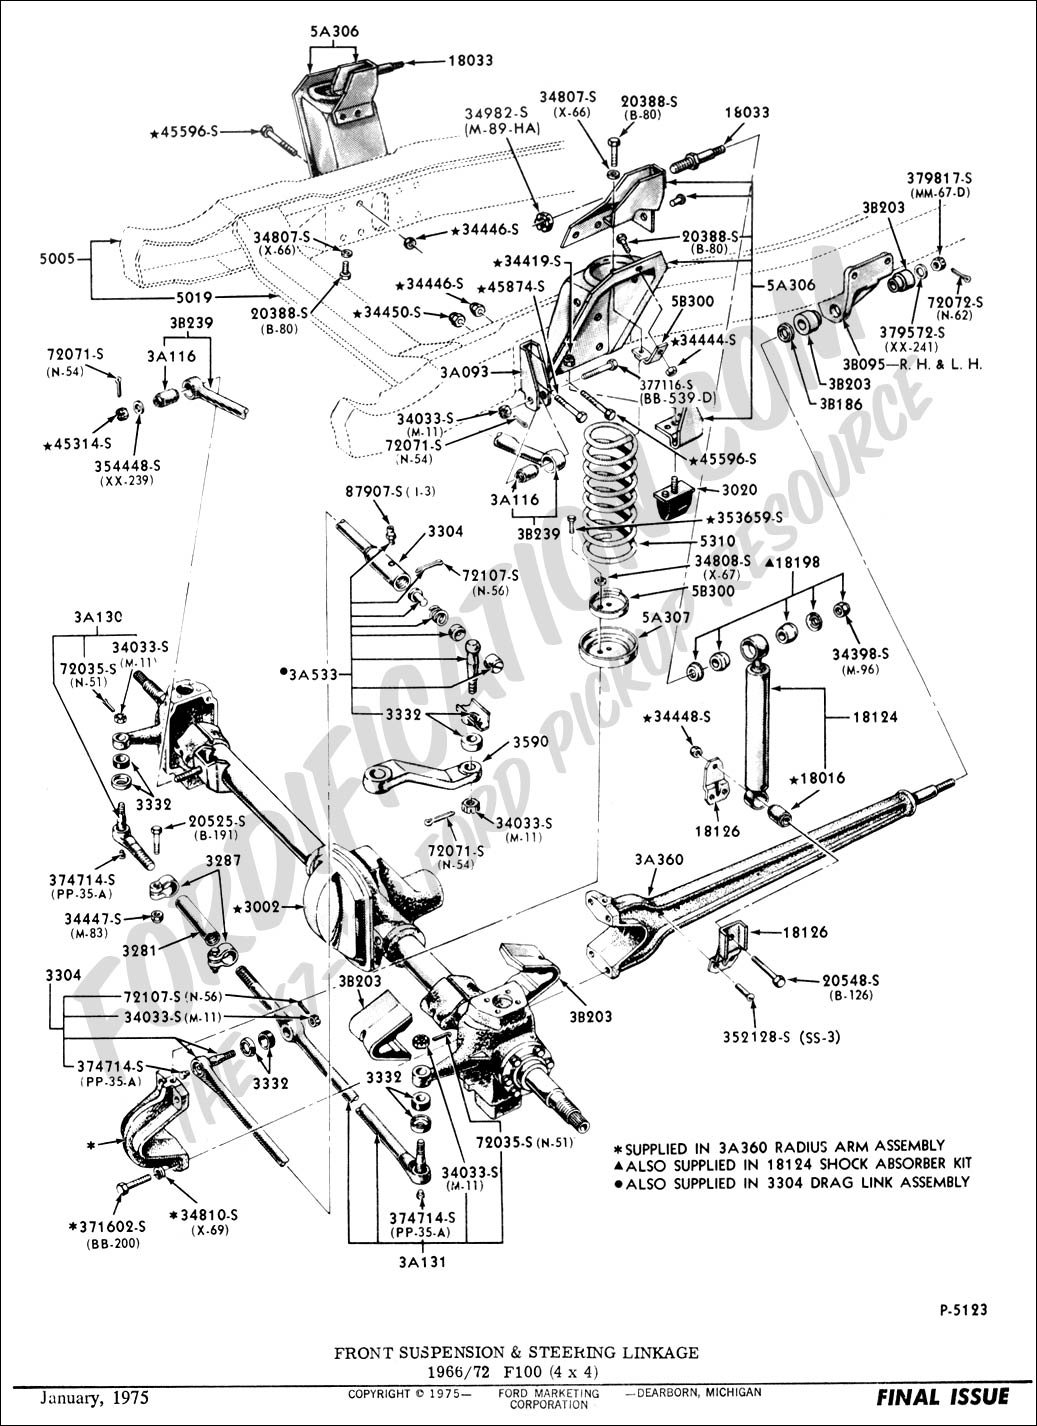 1972 barracuda steering linkage schematic